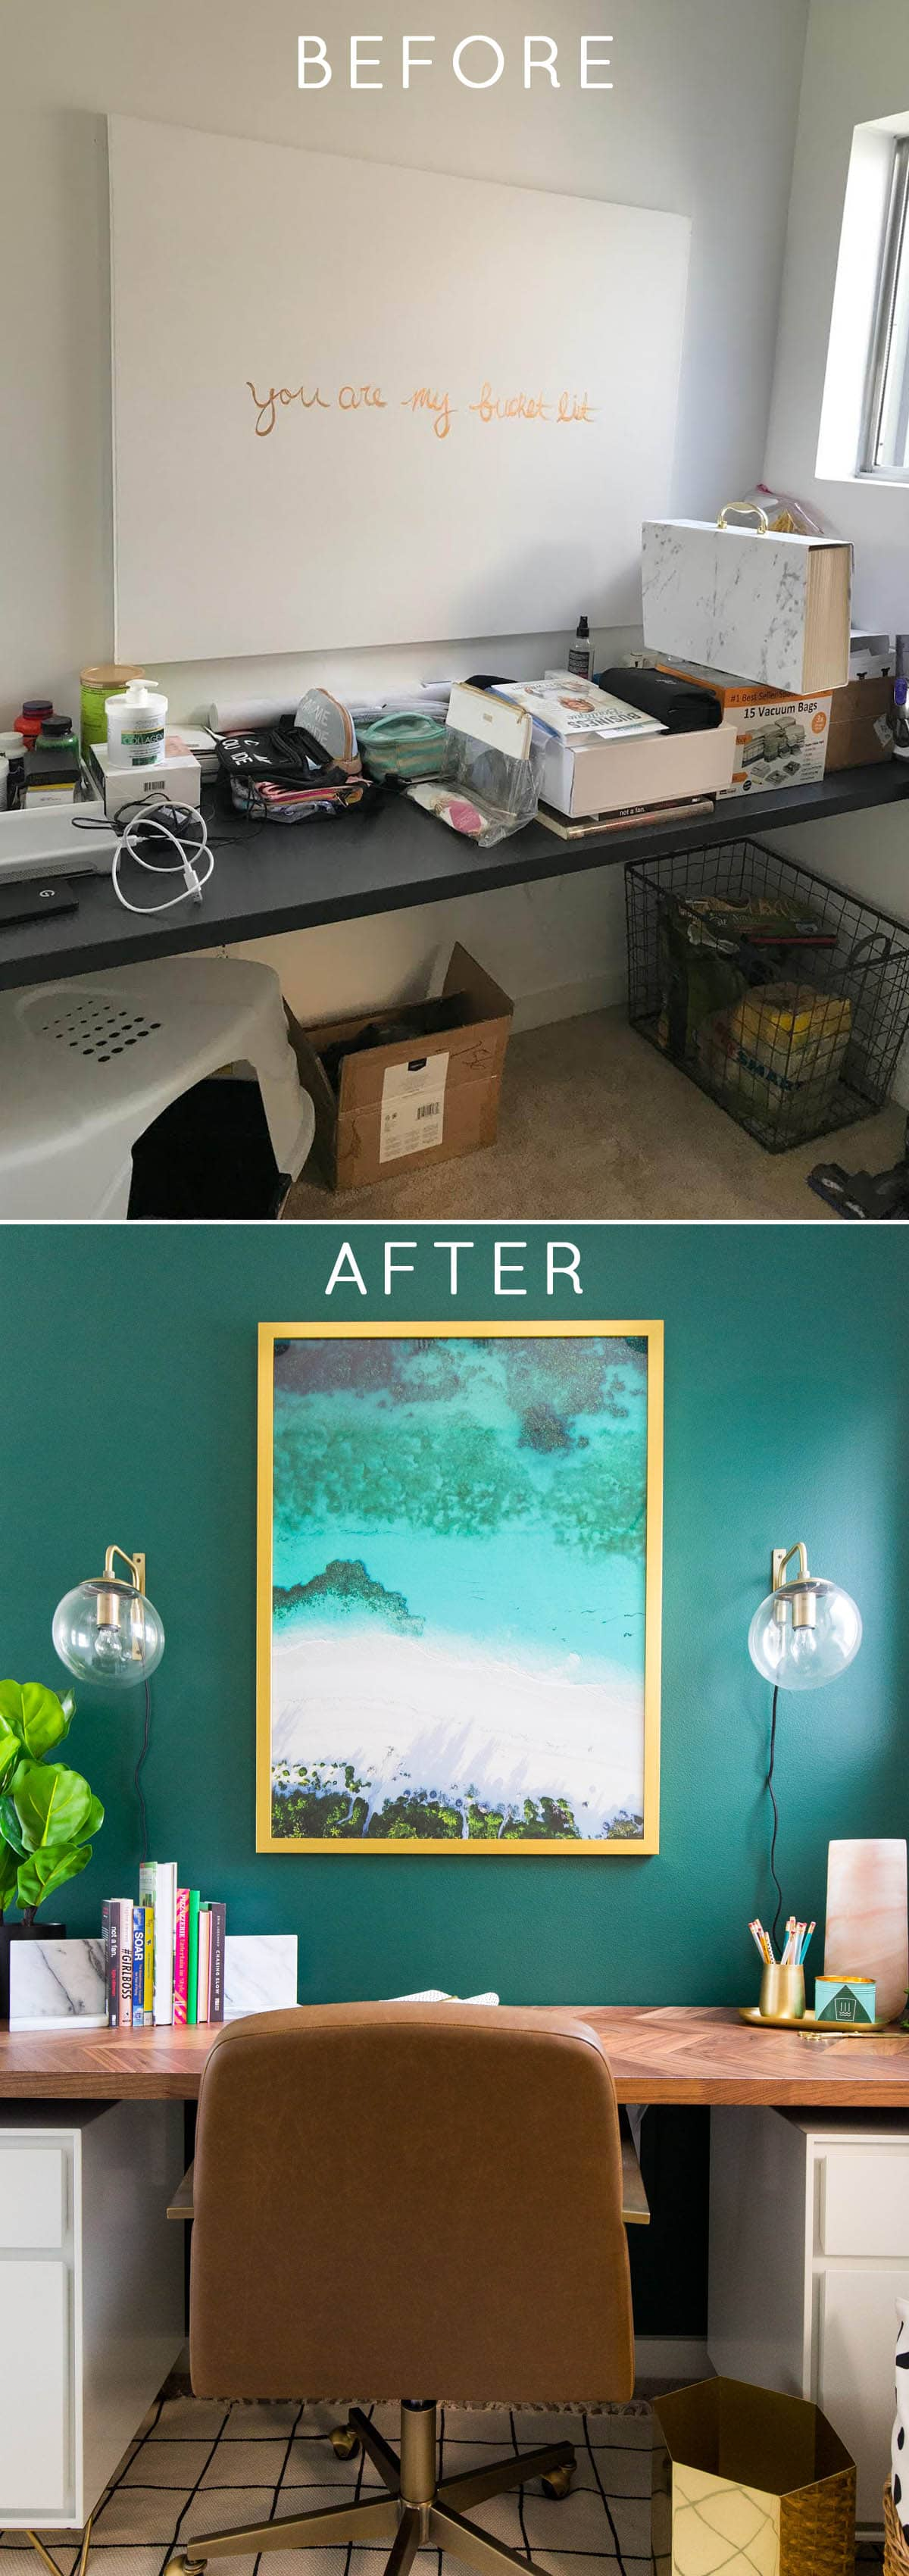 #SUGARANDCLOTHCASA: Before + After of our Study Room Makeover by top Houston lifestyle blogger Ashley Rose of Sugar and Cloth